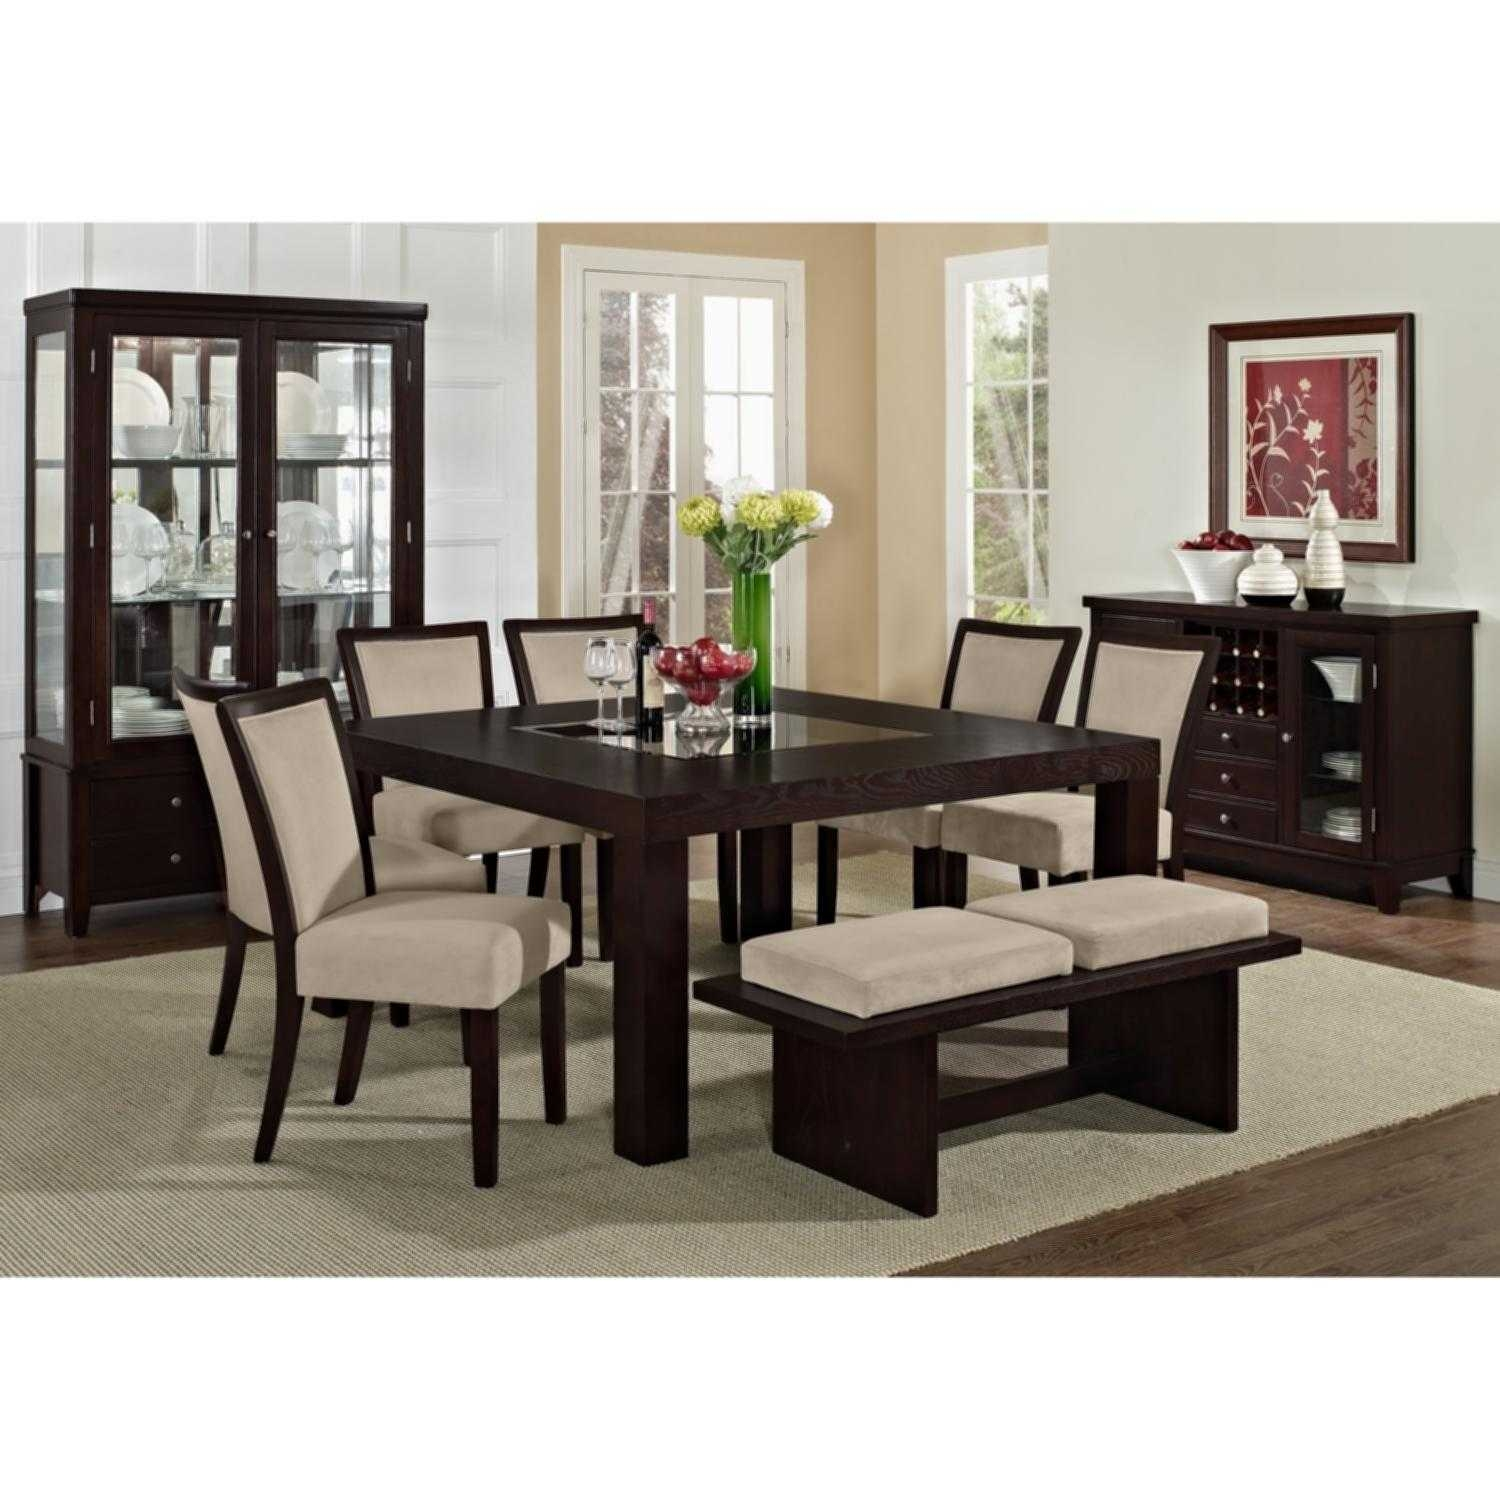 Value City Furniture Kitchen Sets Pictures Dining Room Popular Layjao